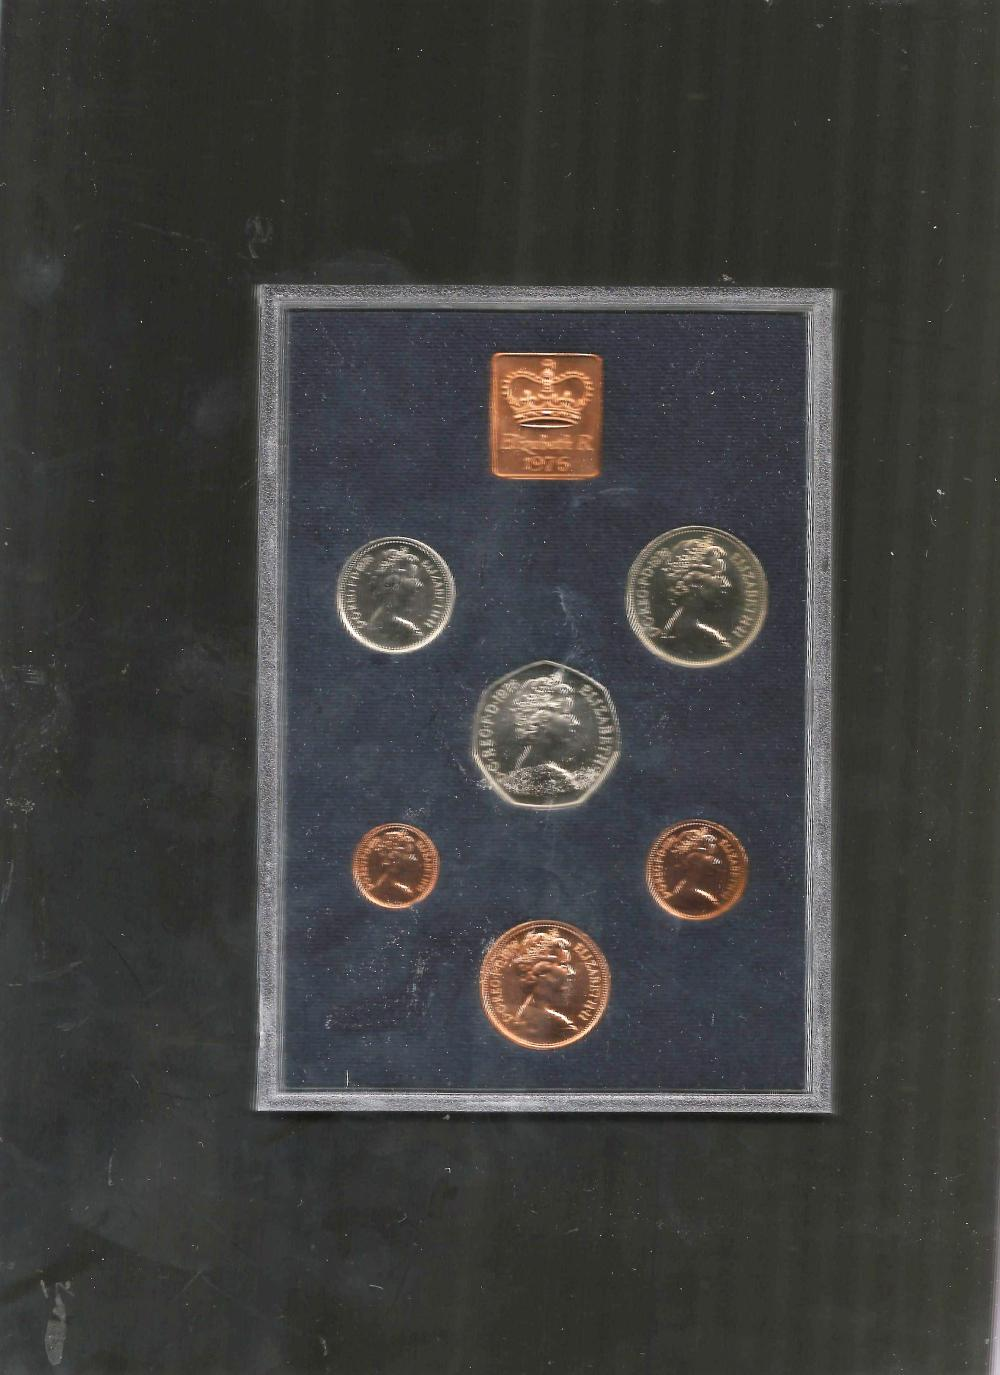 UK GB 1976 Proof coin set, mounted in a plastic display case, with a protective outer case. The